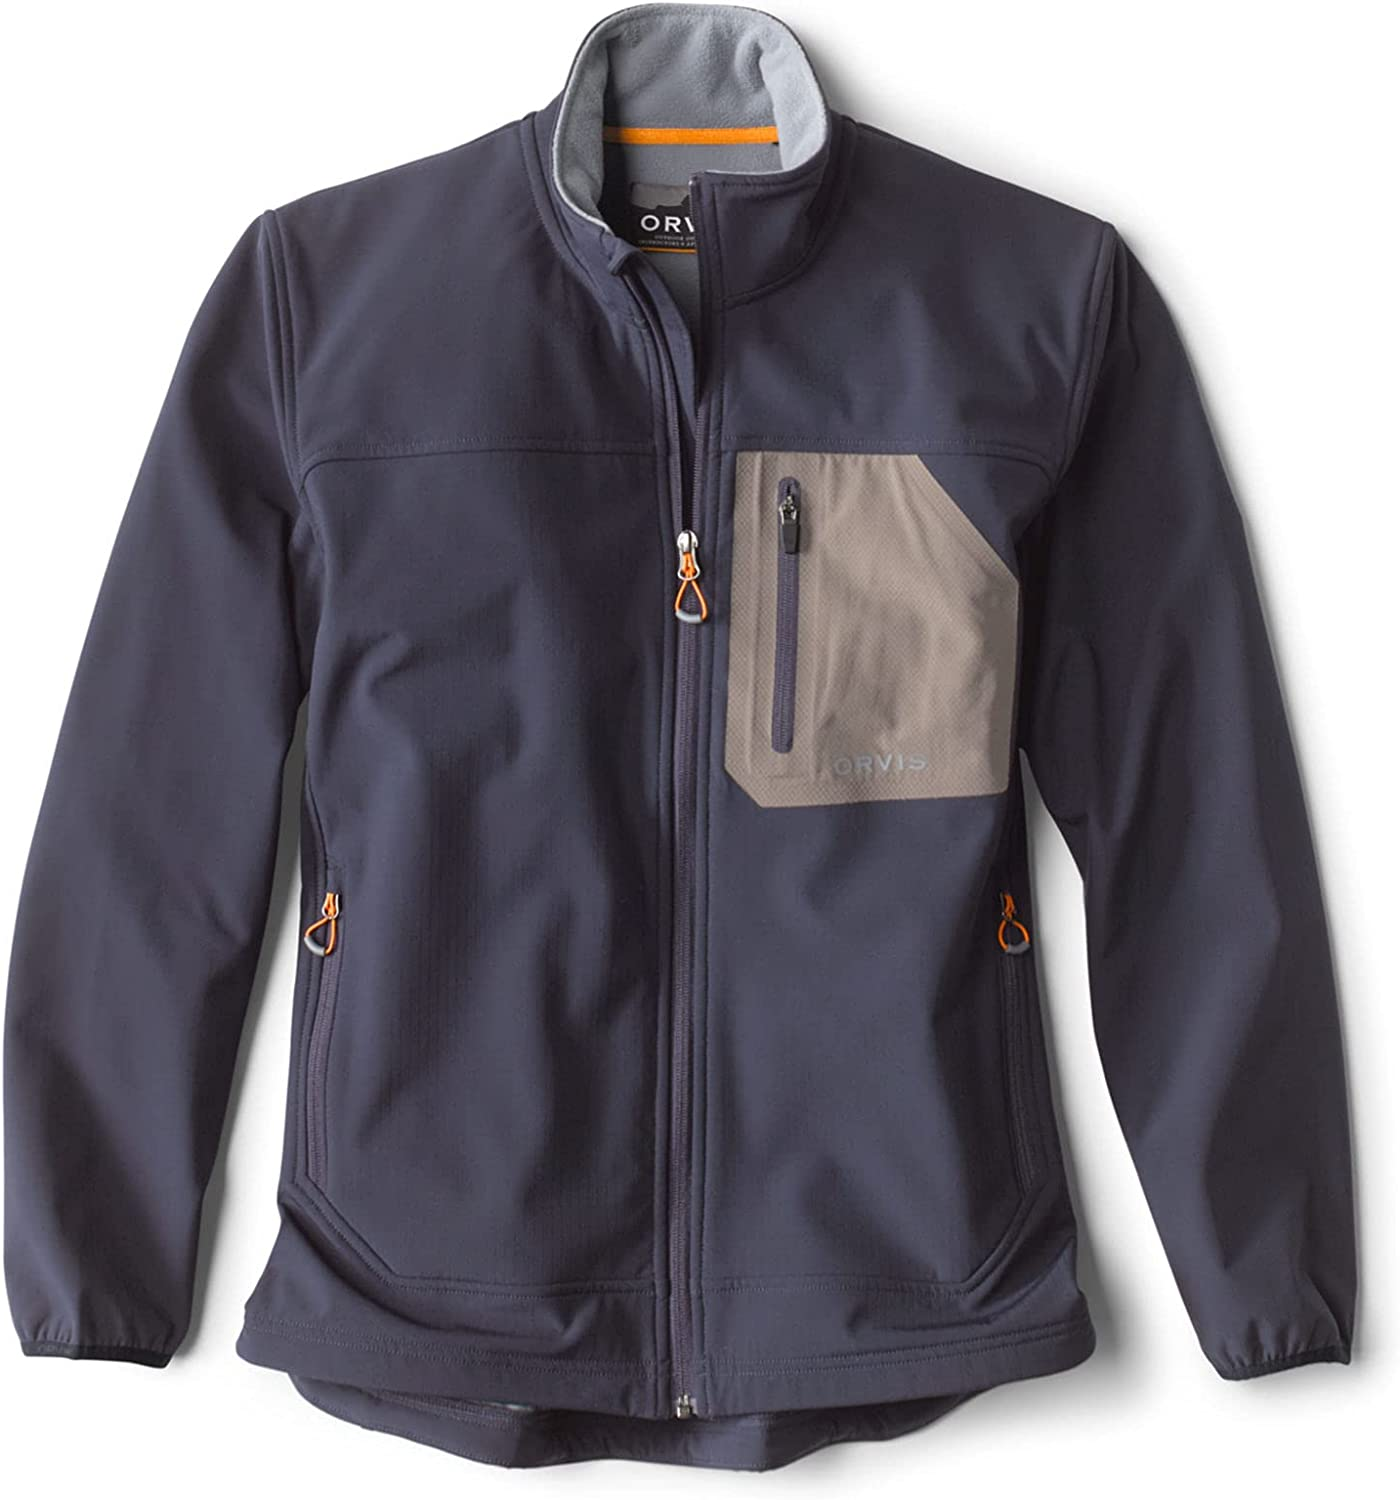 Orvis Chicago Mall Men's Tech Jacket Outlet ☆ Free Shipping Softshell